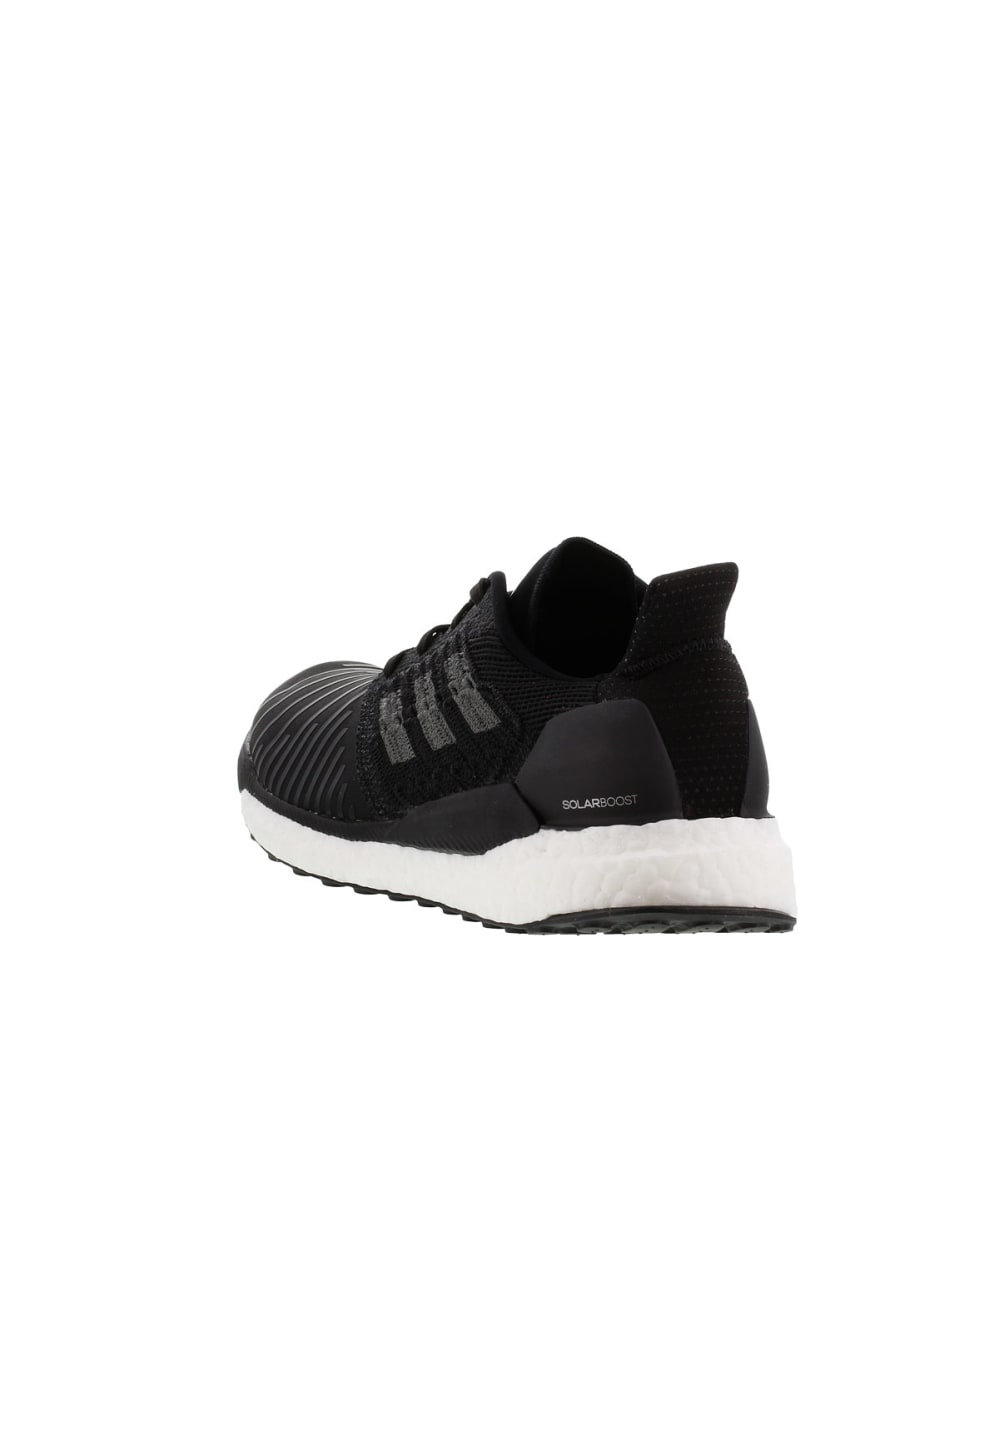 best service 546cd 74354 adidas Solar Boost - Running shoes for Women - Black